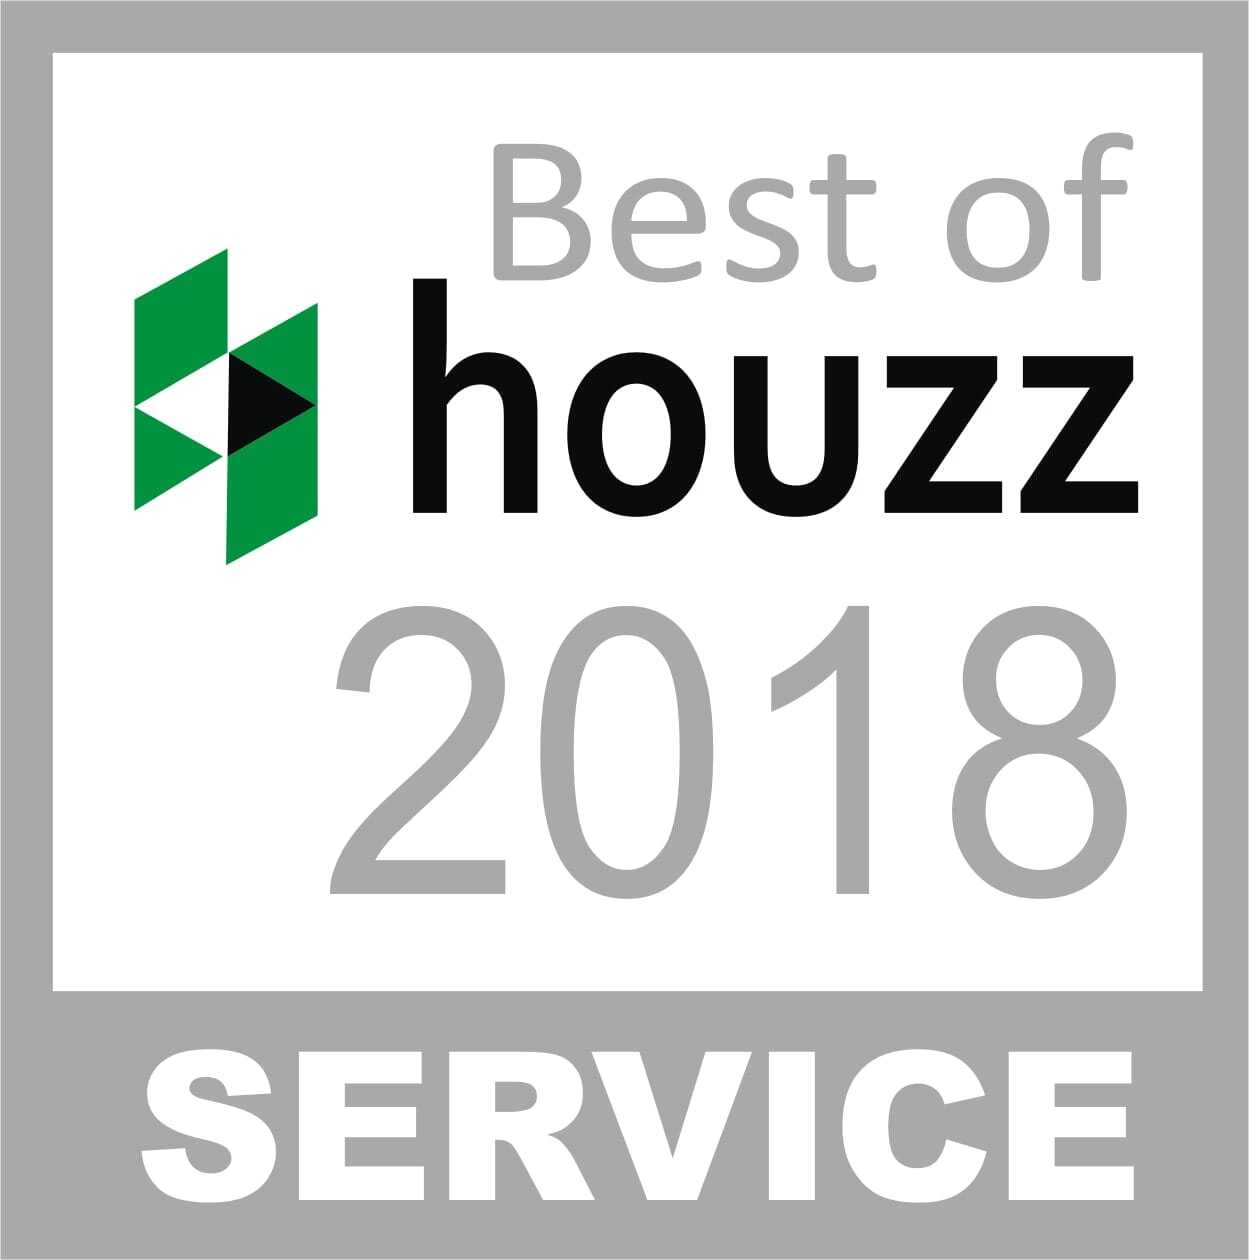 Carpetland in Stockton & Modesto CA received the Best of Houzz award for 2018